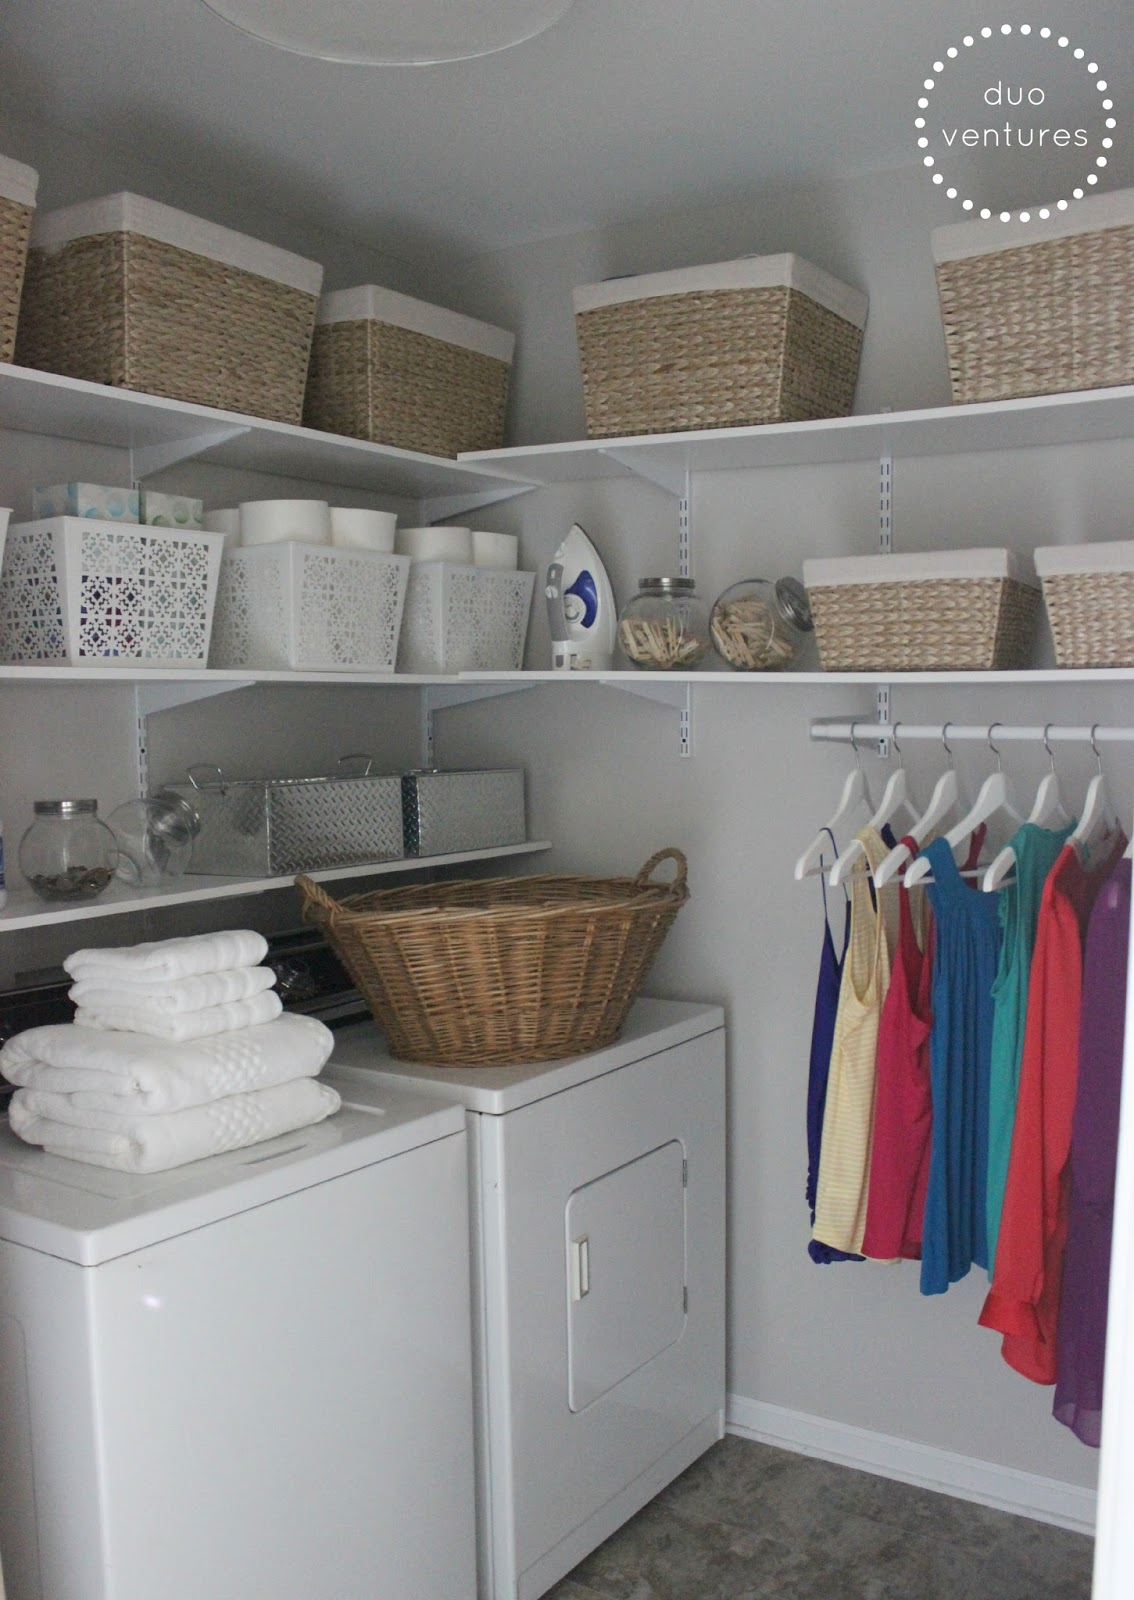 Duo ventures laundry room makeover for Laundry room shelving